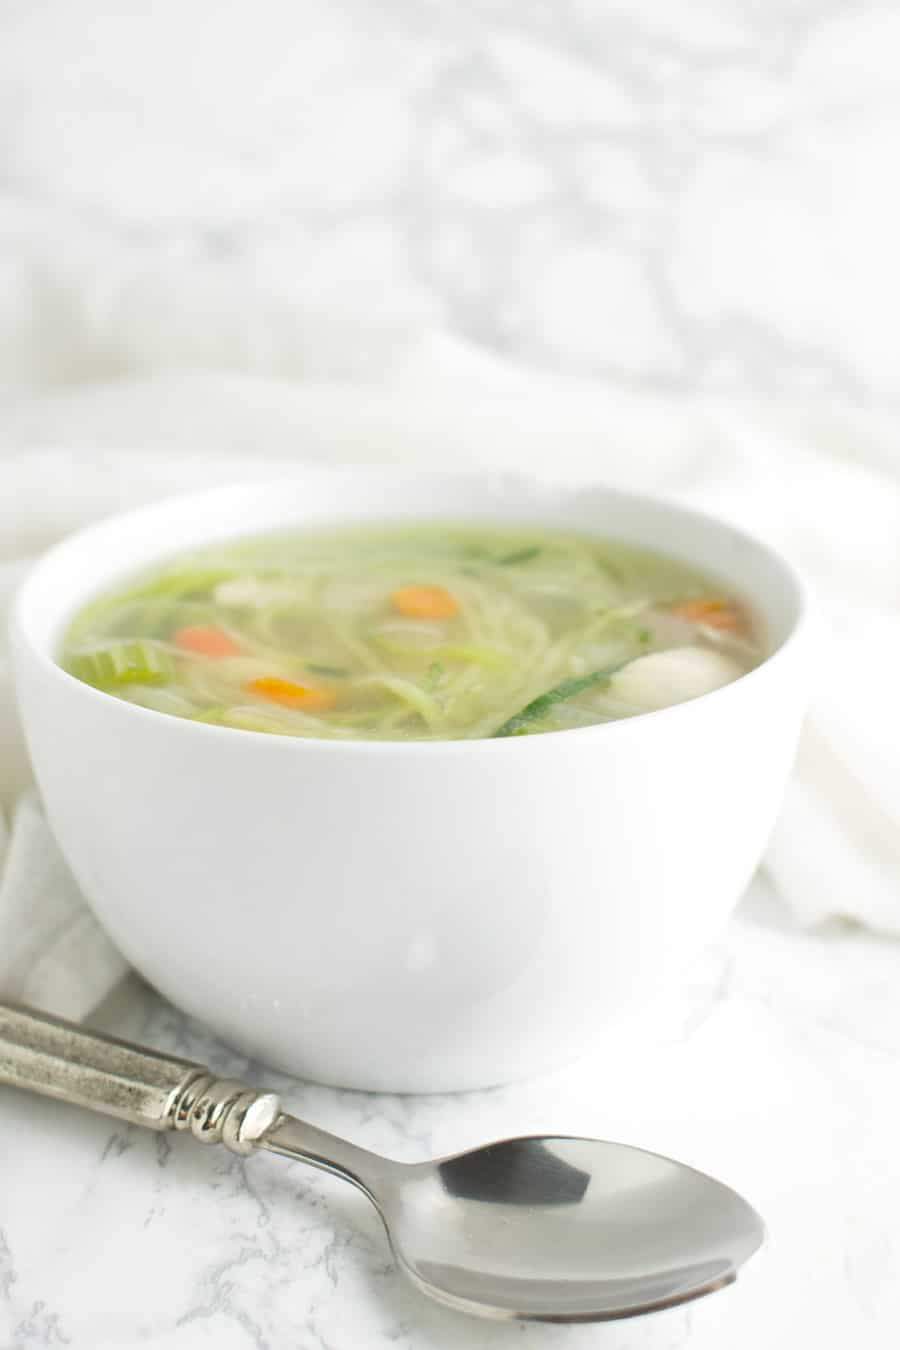 Chicken Zoodle Soup recipe from acleanplate.com #aip #paleo #autoimmuneprotocol